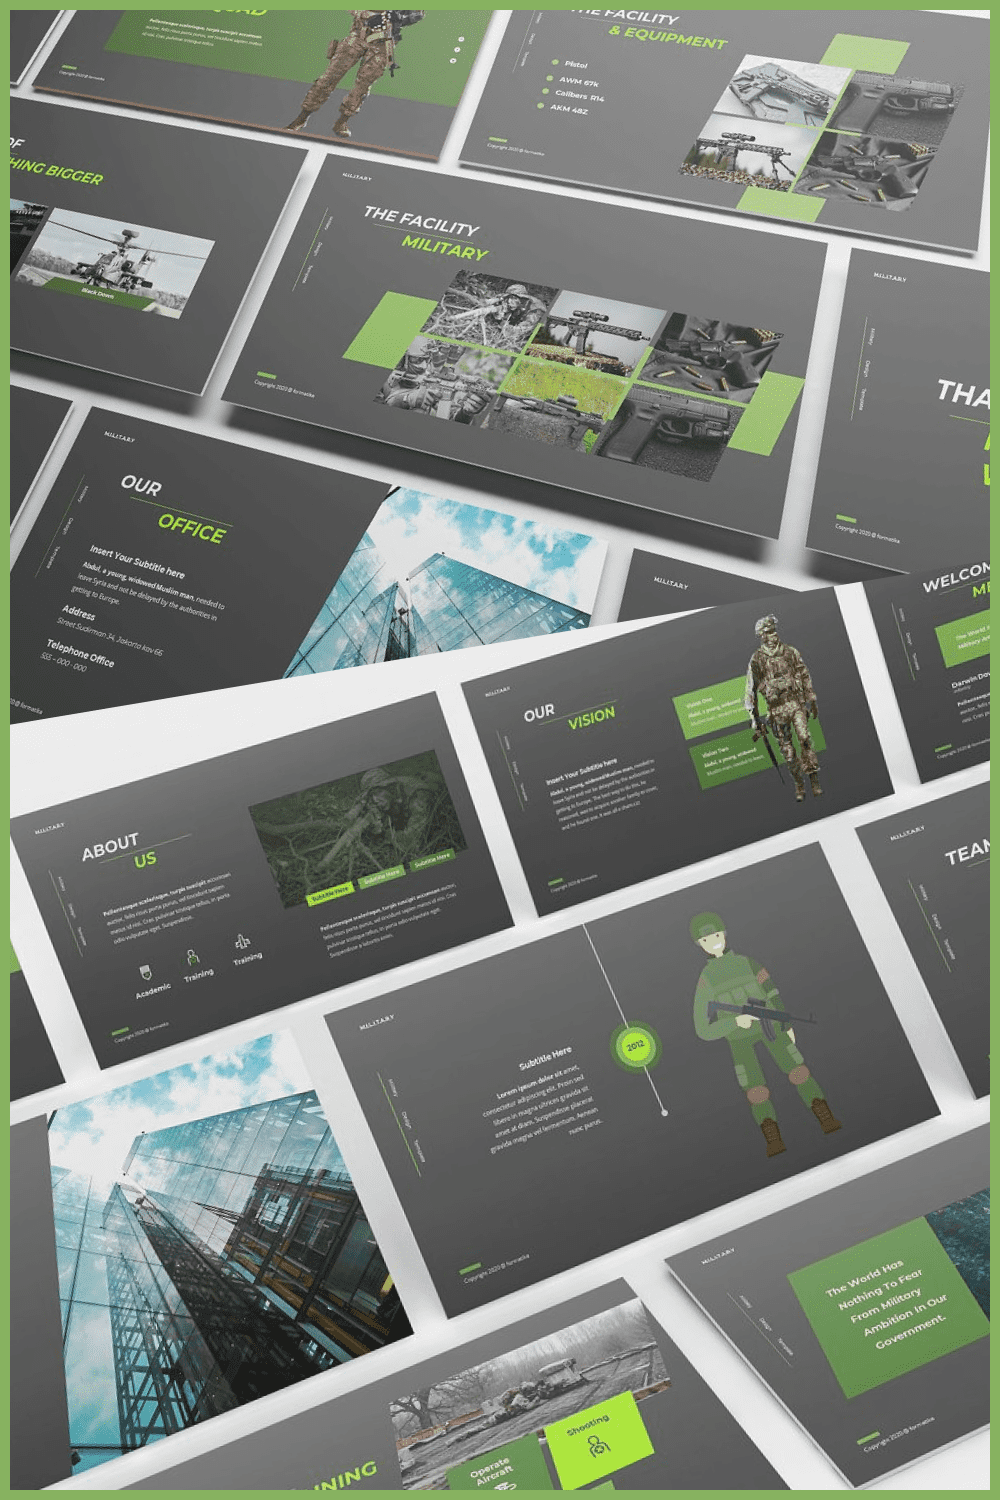 The template has soft grays and shades of green.